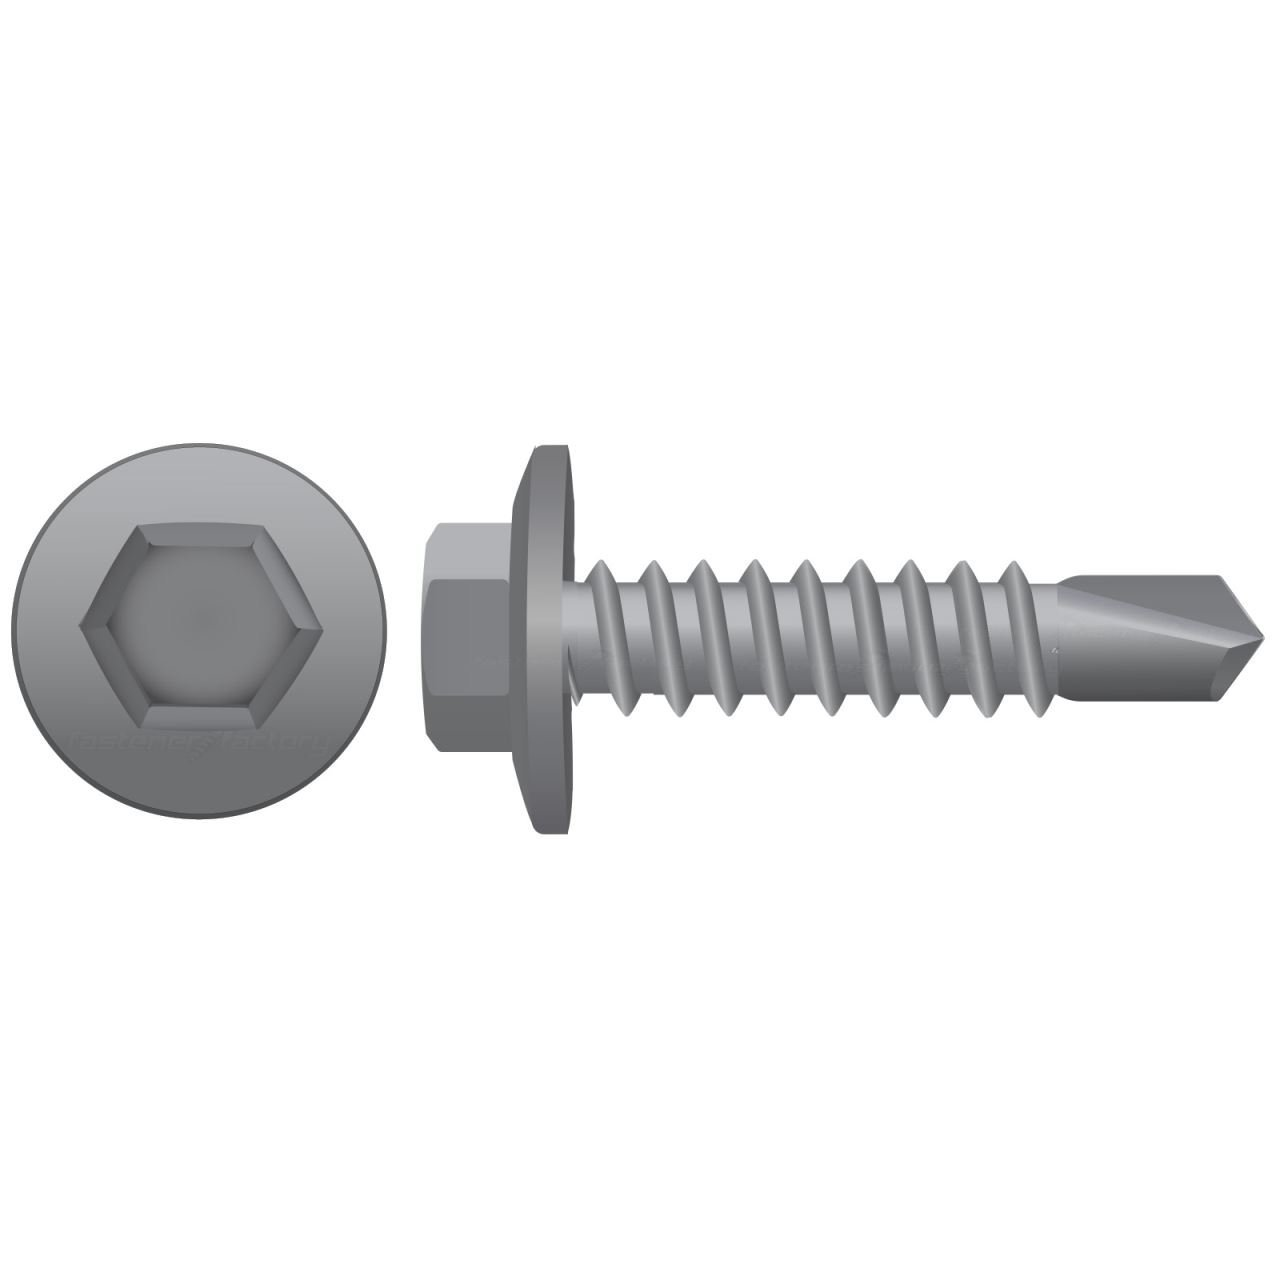 Galvanised Hex Self Drilling Screws